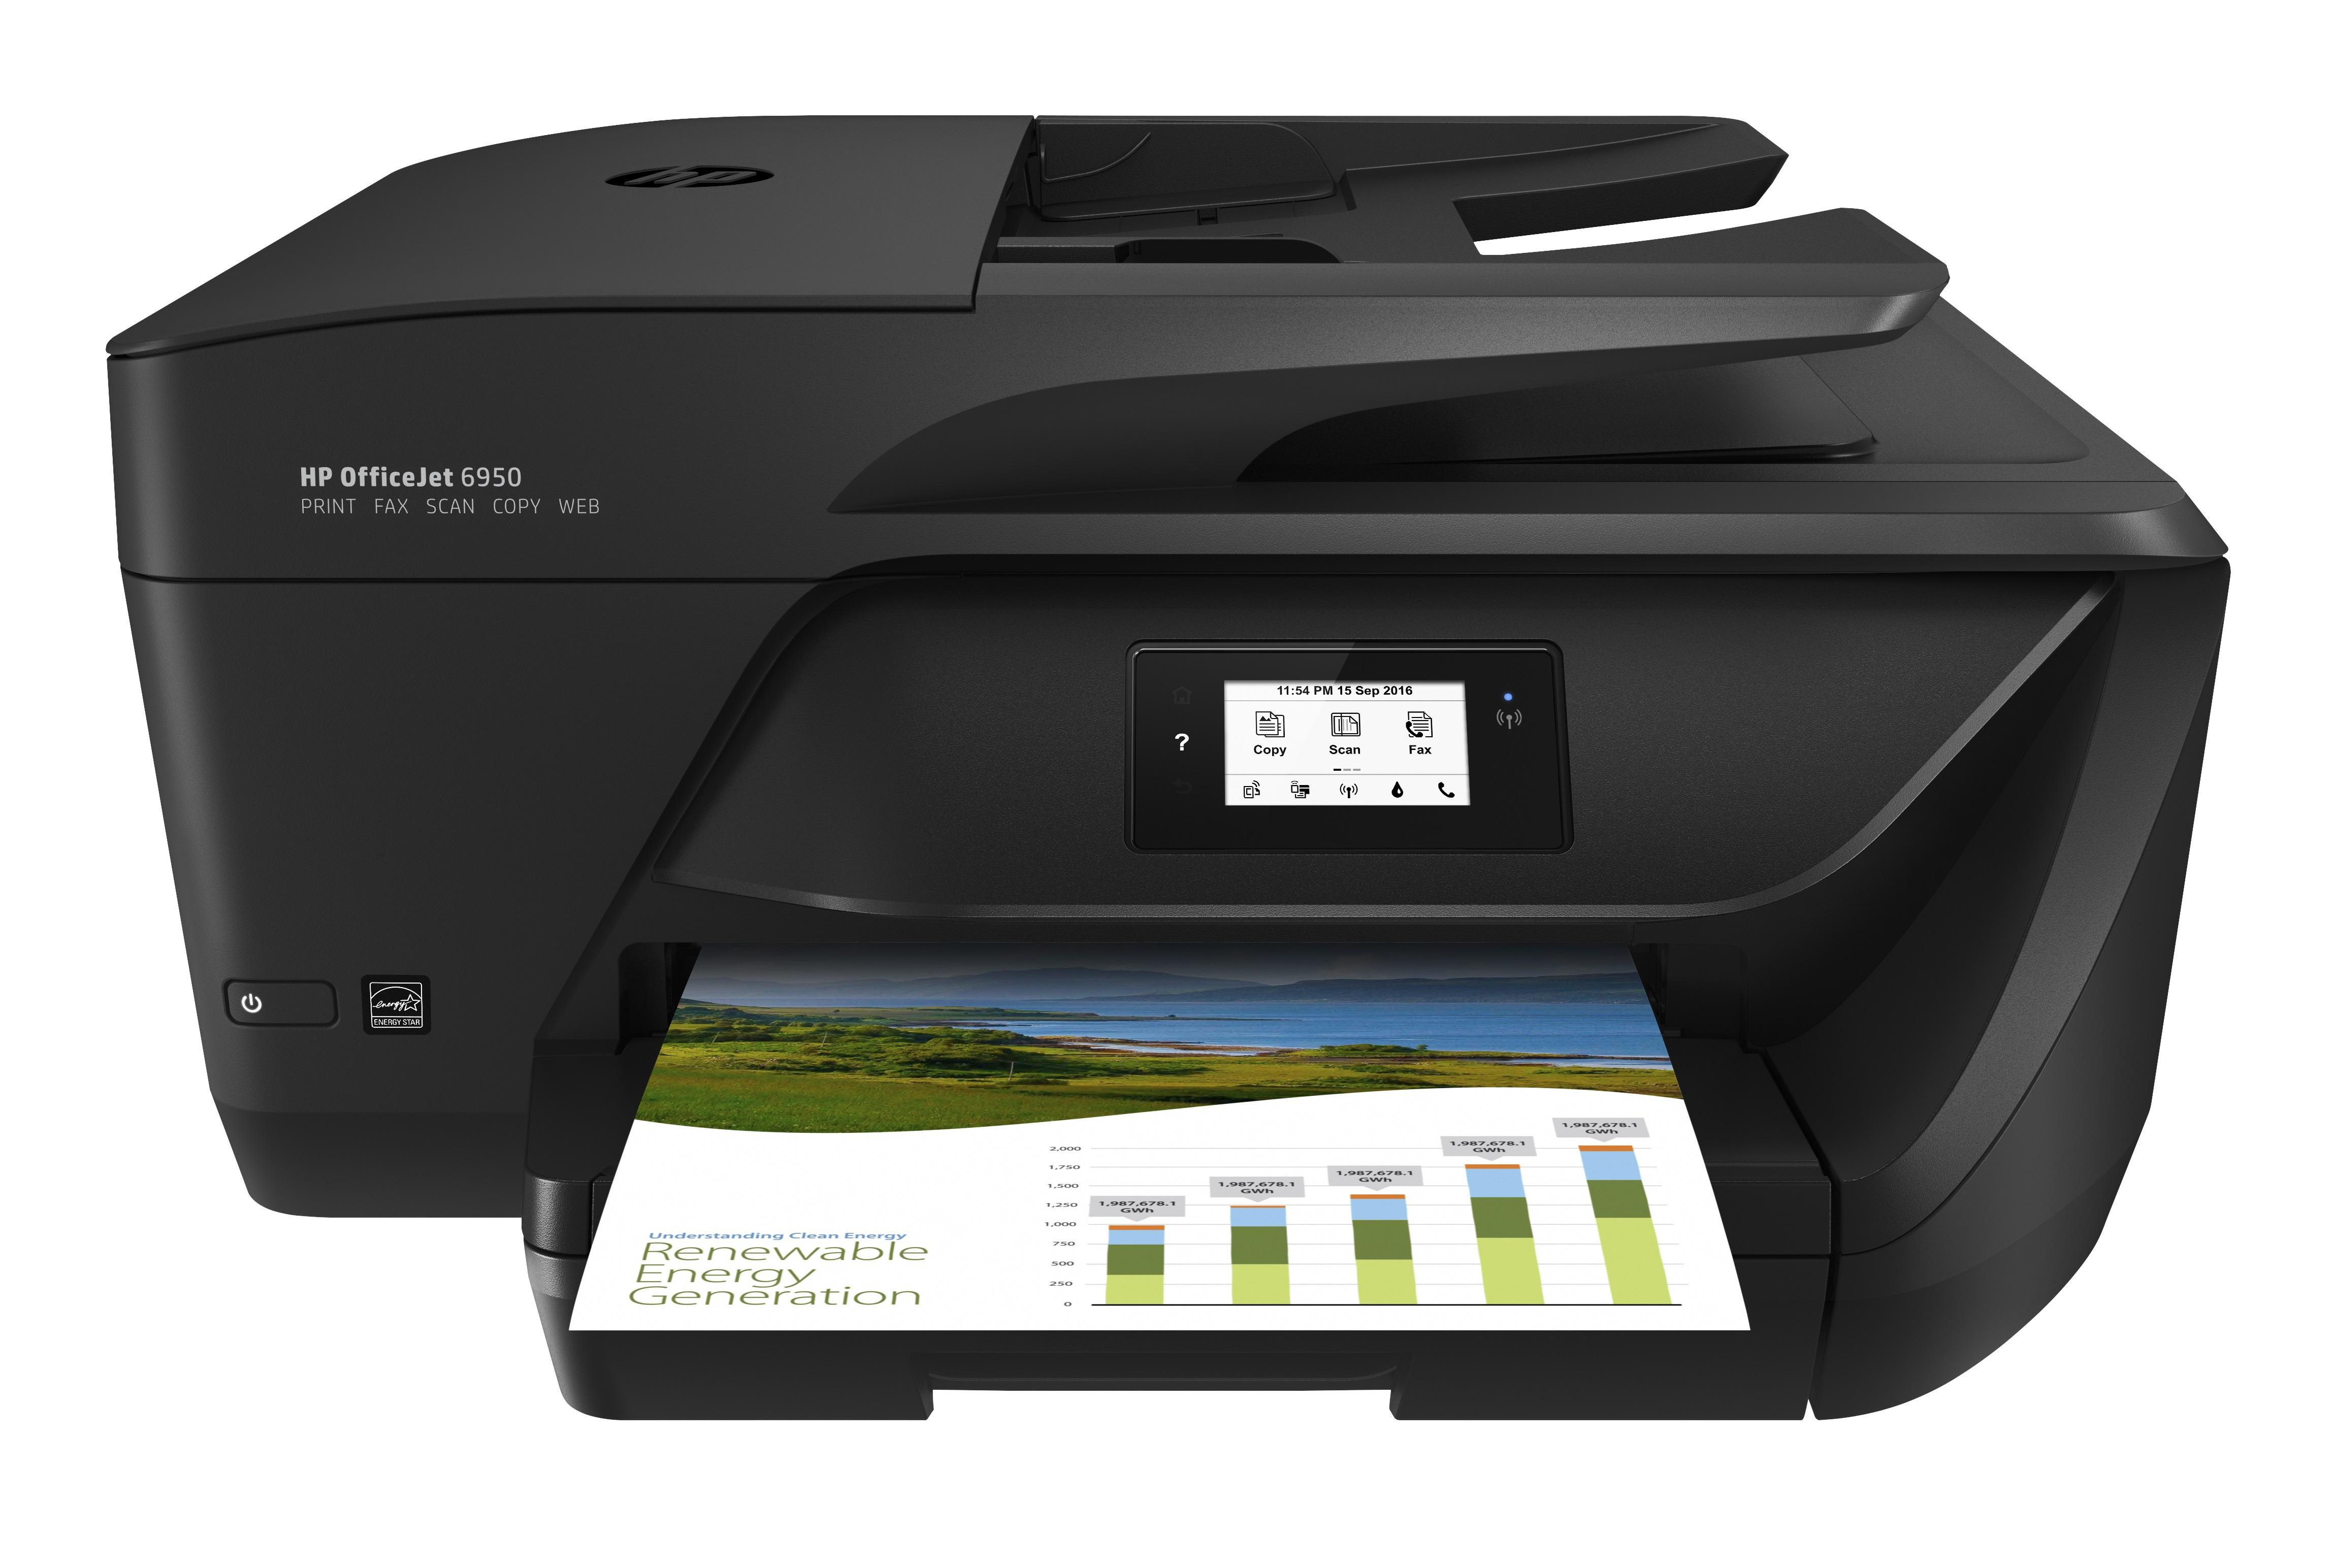 HP Officejet 6950 eAiO printer 3st